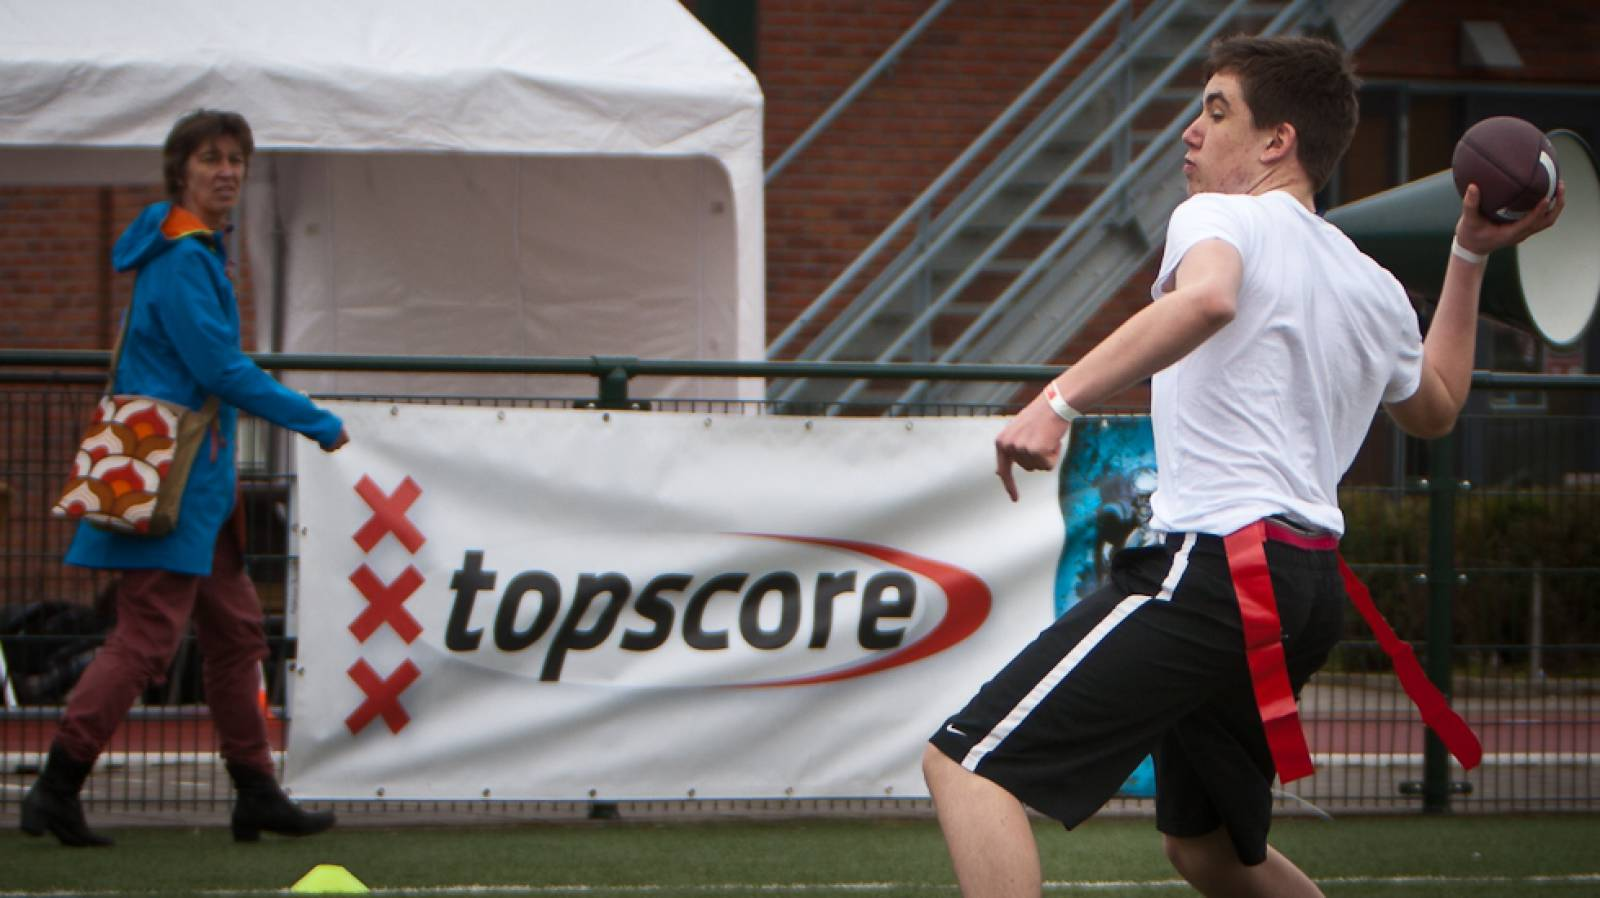 Topscore Finals Flag Football 2013